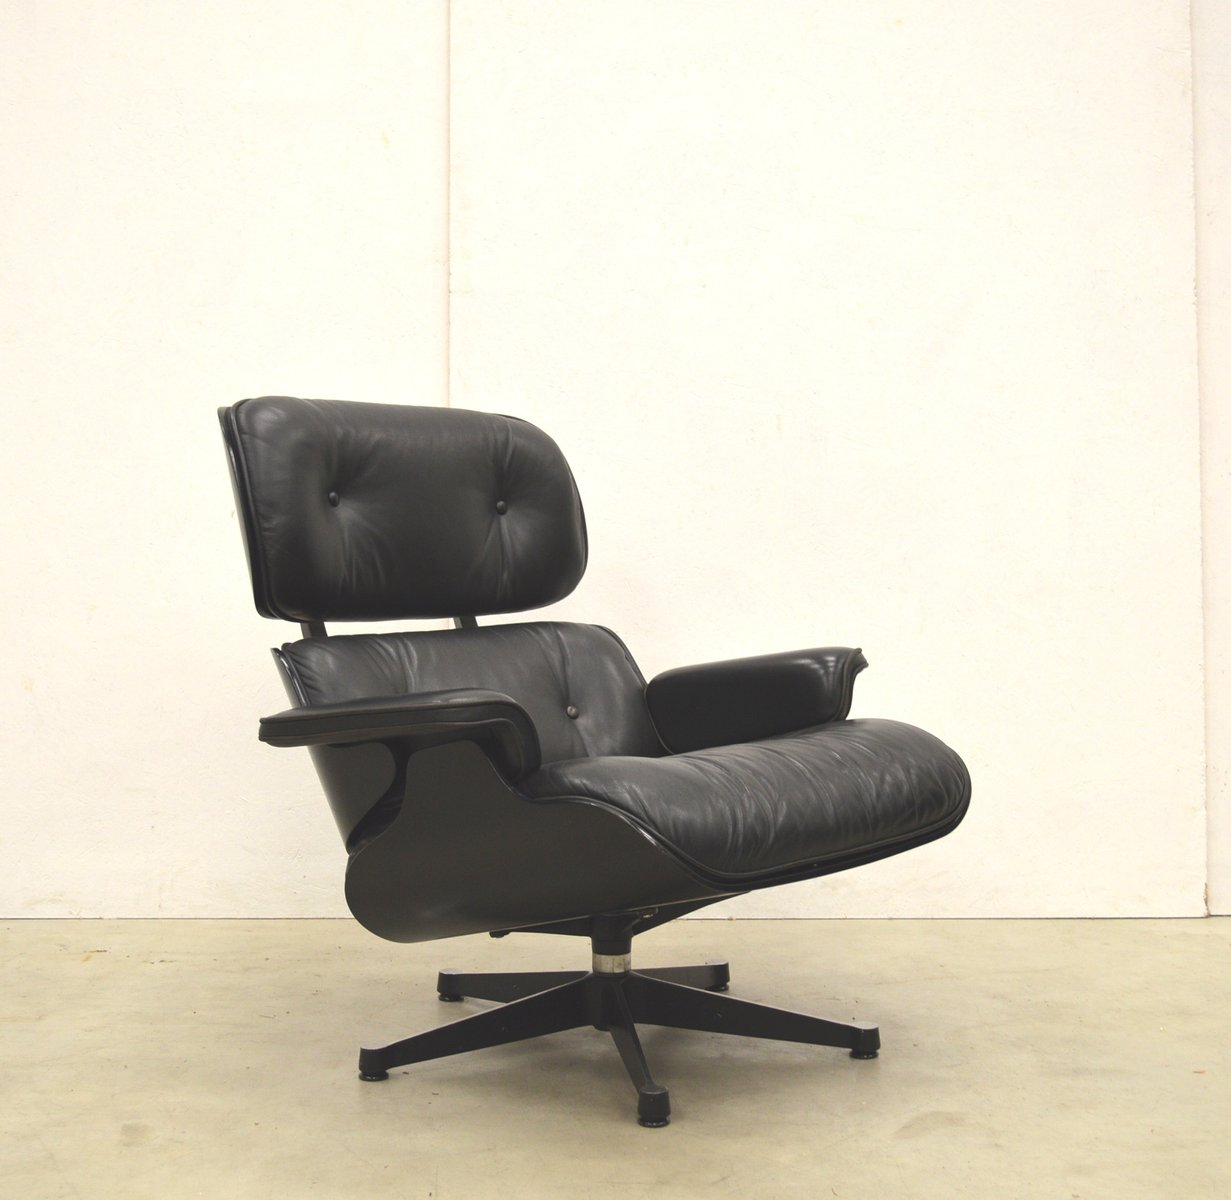 Sessel Charles Eames Schwarzer Sessel Von Charles And Ray Eames Für Vitra 1980er